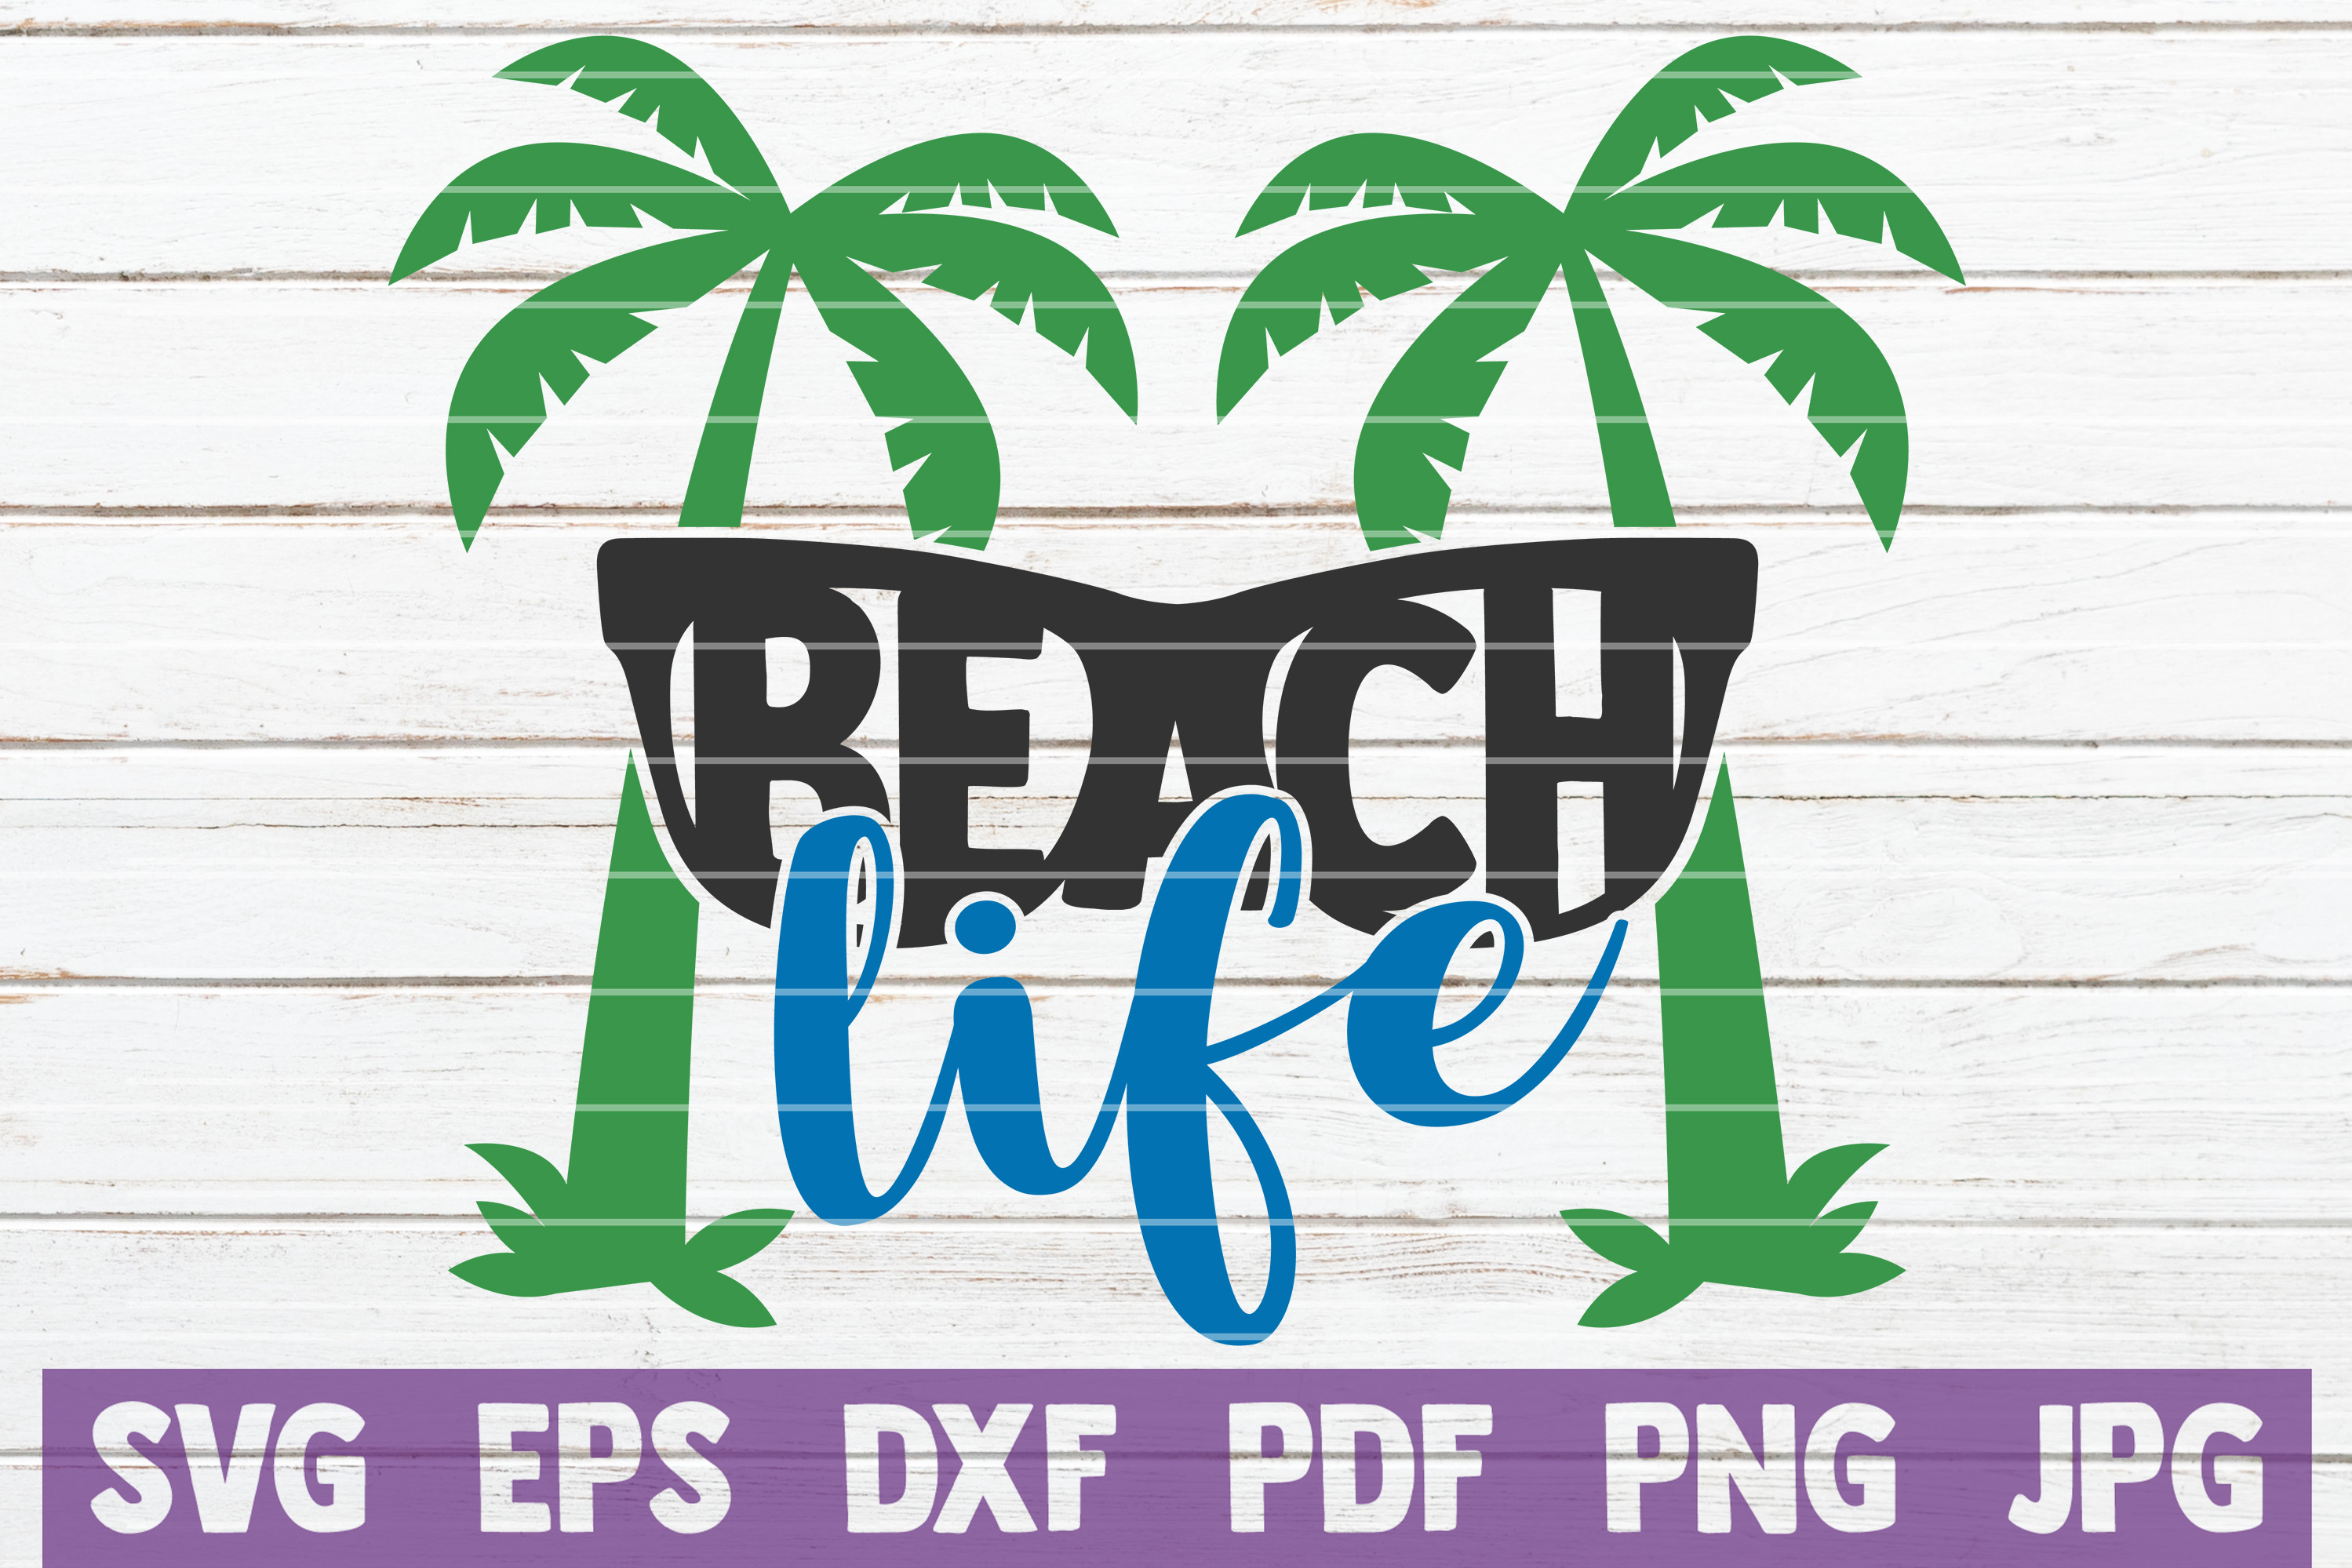 Download Free Beach Life Cut File Graphic By Mintymarshmallows Creative Fabrica for Cricut Explore, Silhouette and other cutting machines.